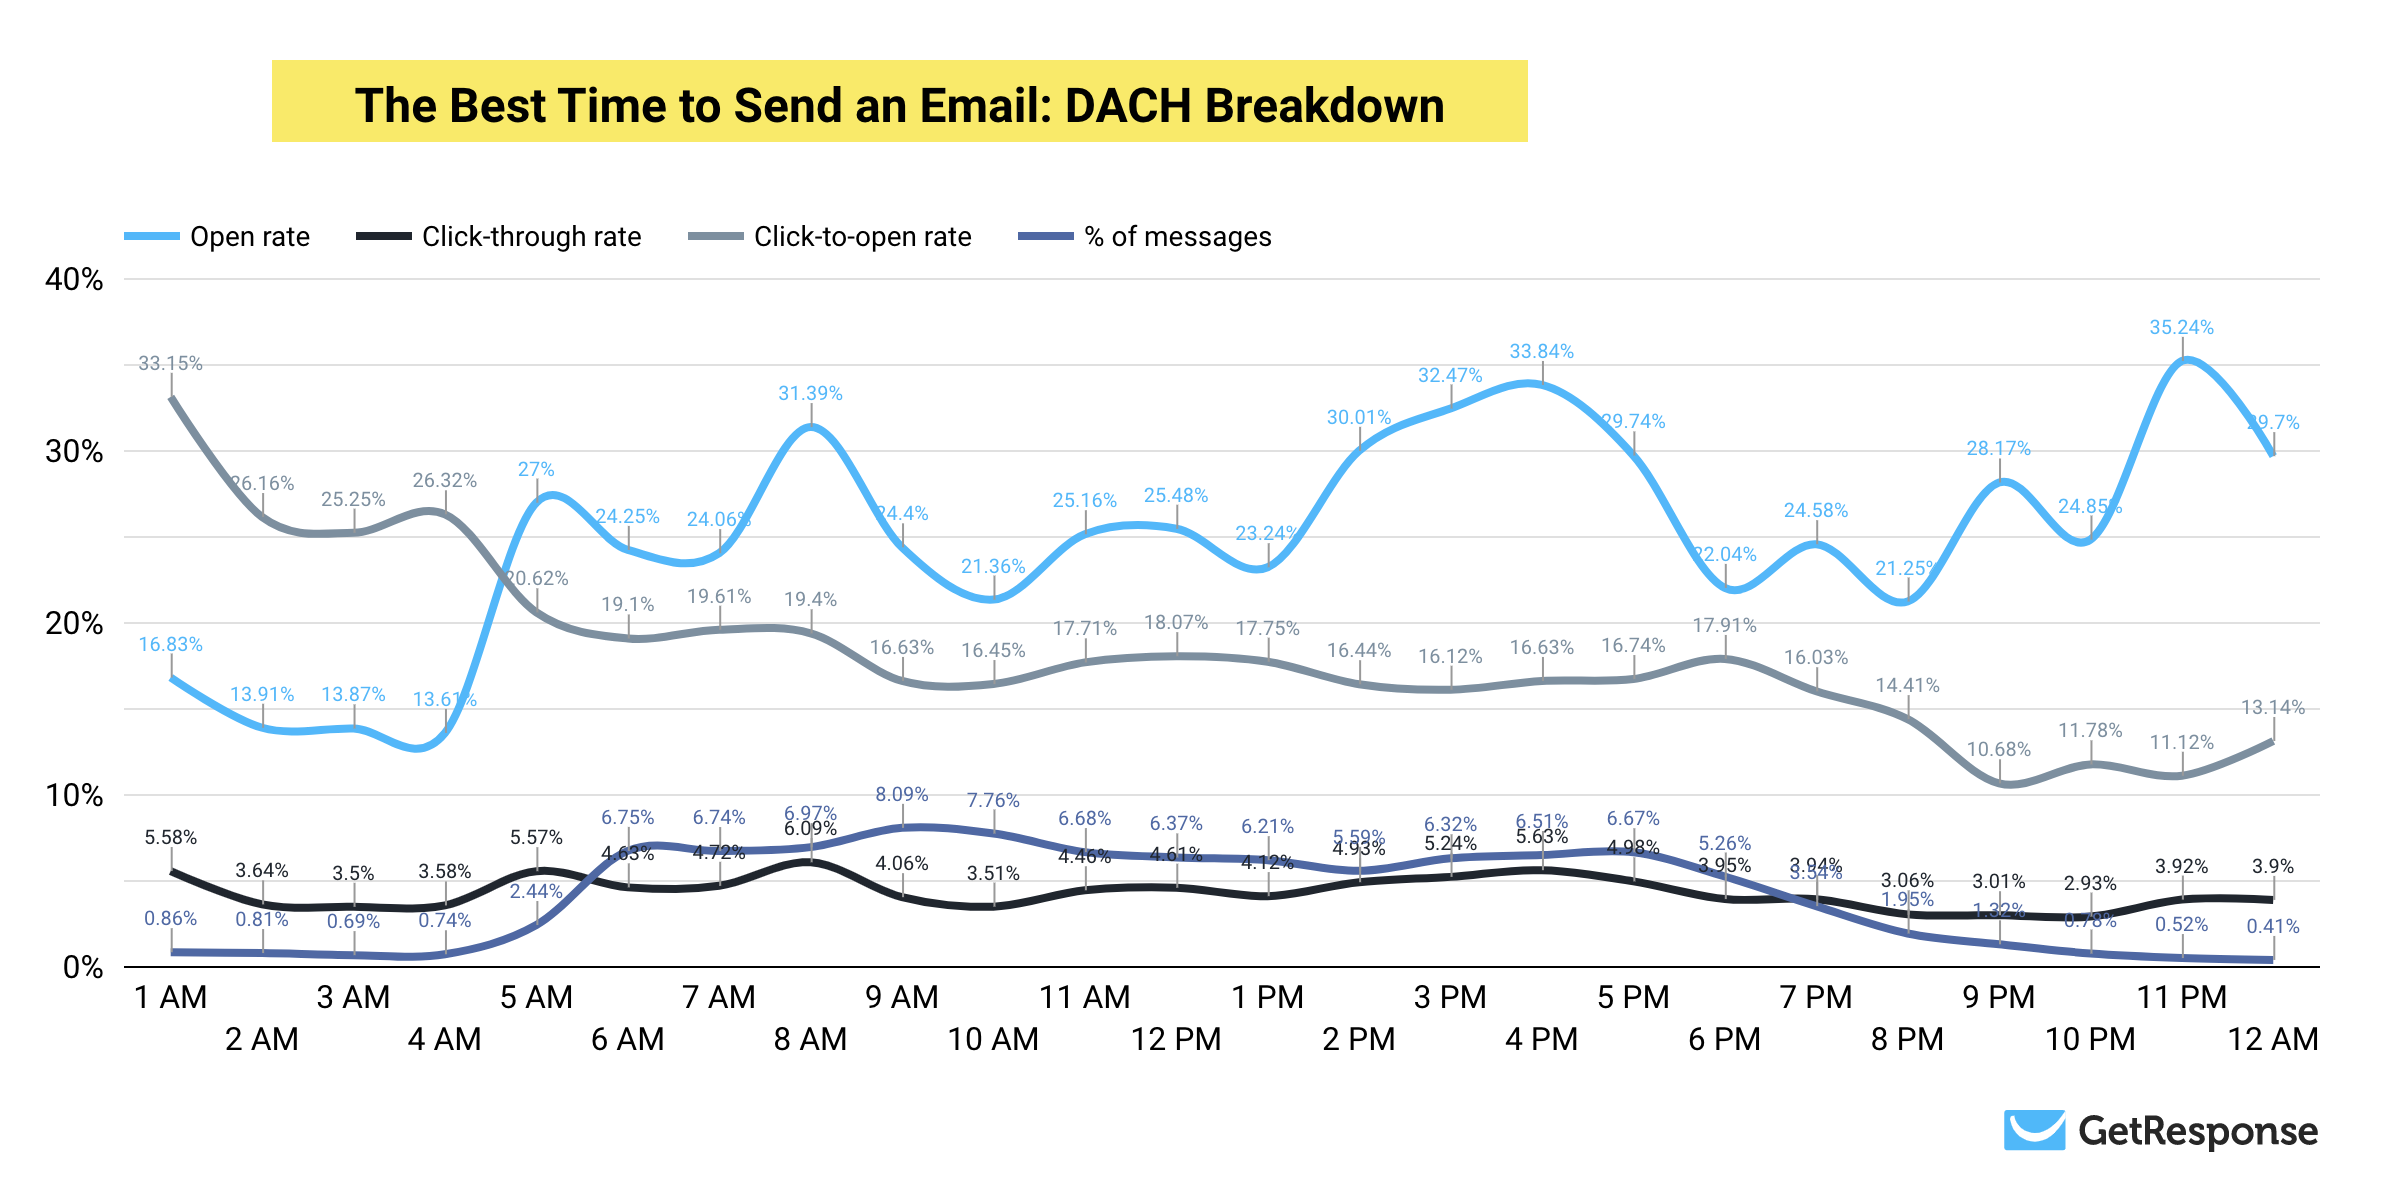 The Best Time to Send an Email in DACH region - full results.